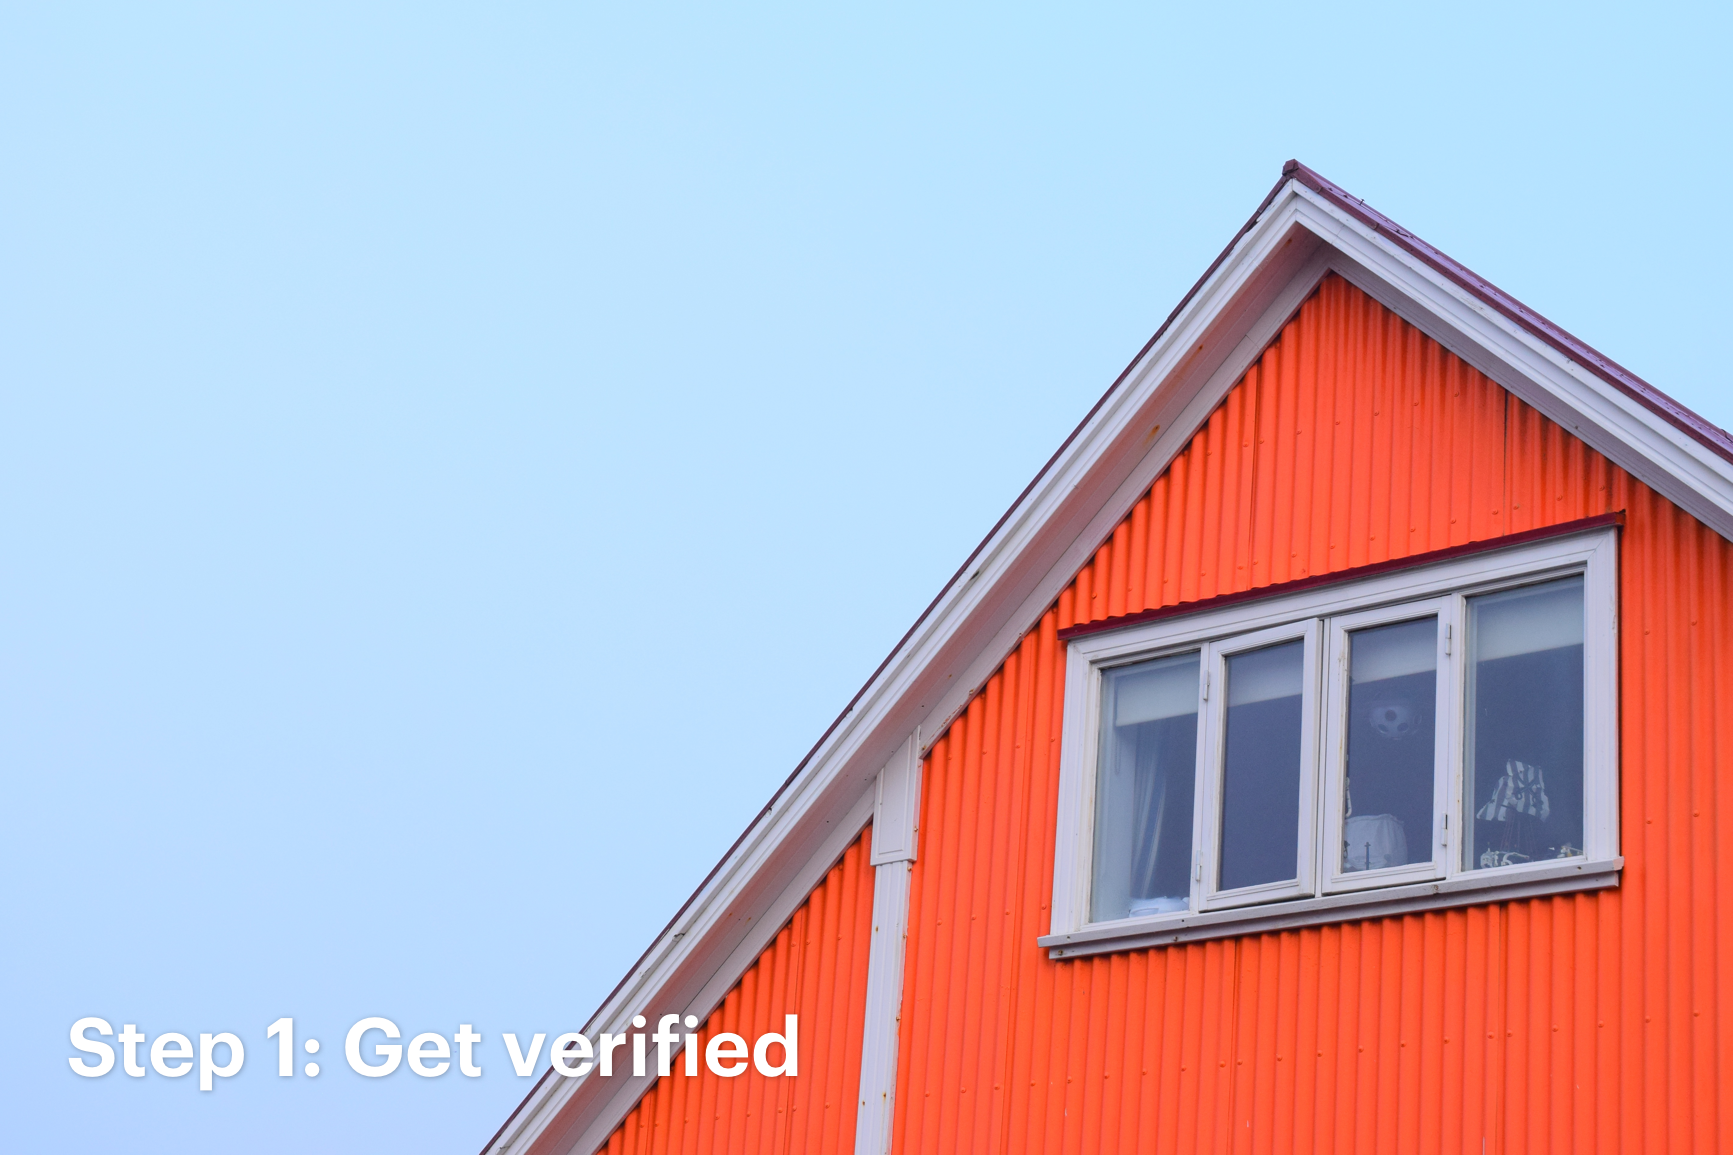 Close Up of Red Home Against Light Blue Sky with Text That Reads: Step 1: Get Verified